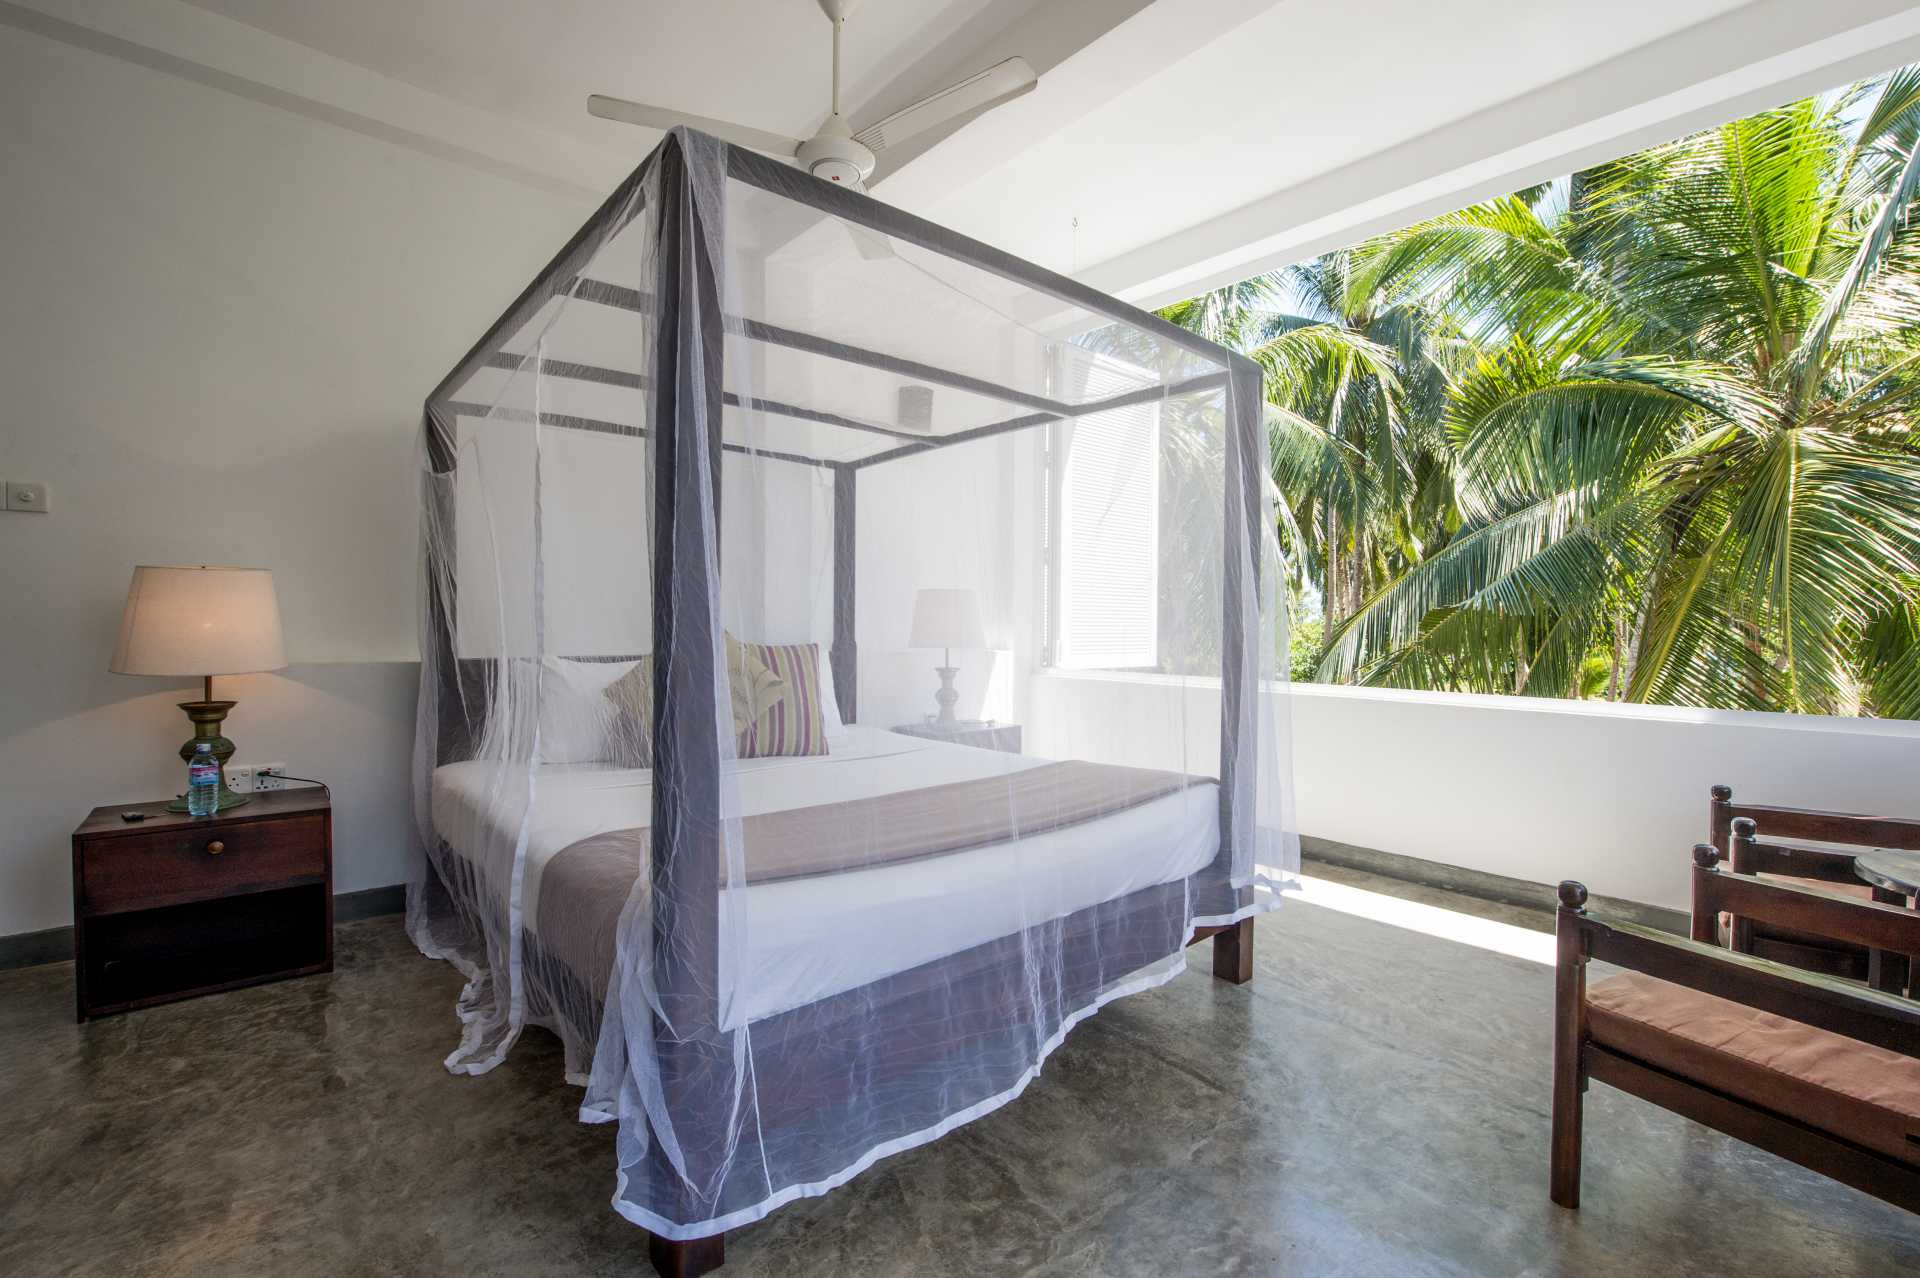 Sri-Lanka-Jasper-house-double-room-view-from-bed-open-window-palms